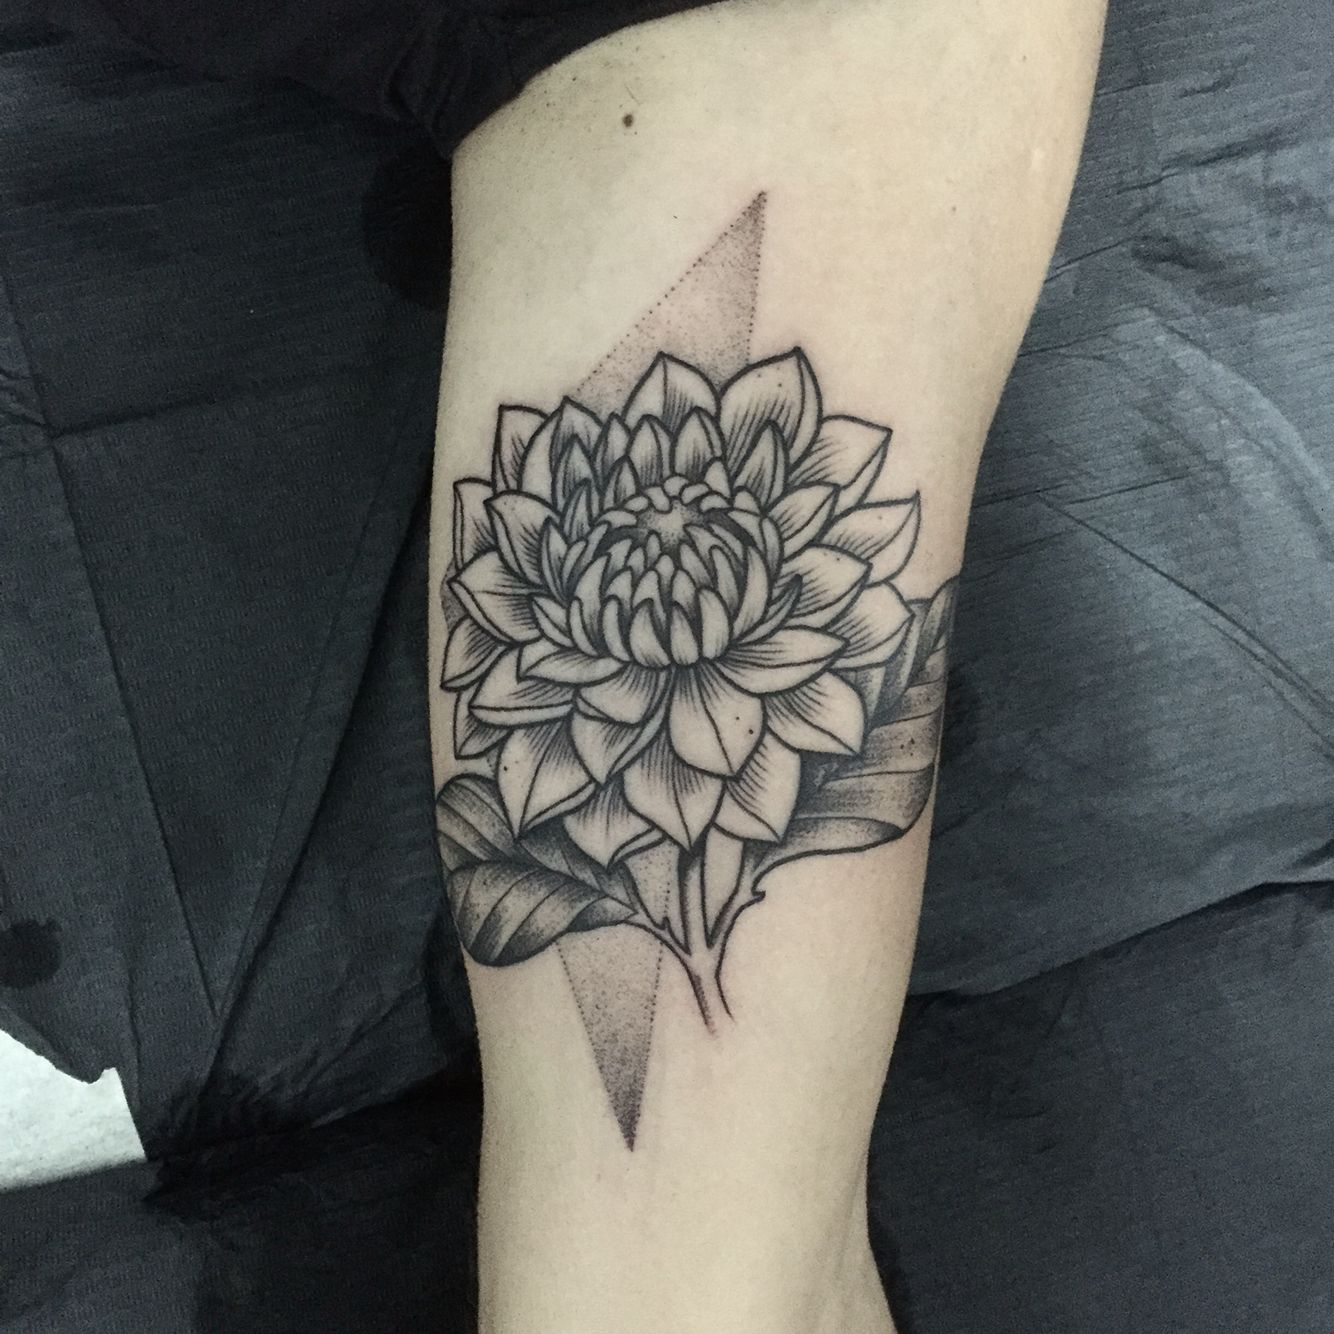 Floral Engraving Tattoo By Miss Sita Line Work Dahlia Botanical Dot Work Tattoos Constellation Tattoos Dahlia Flower Tattoos